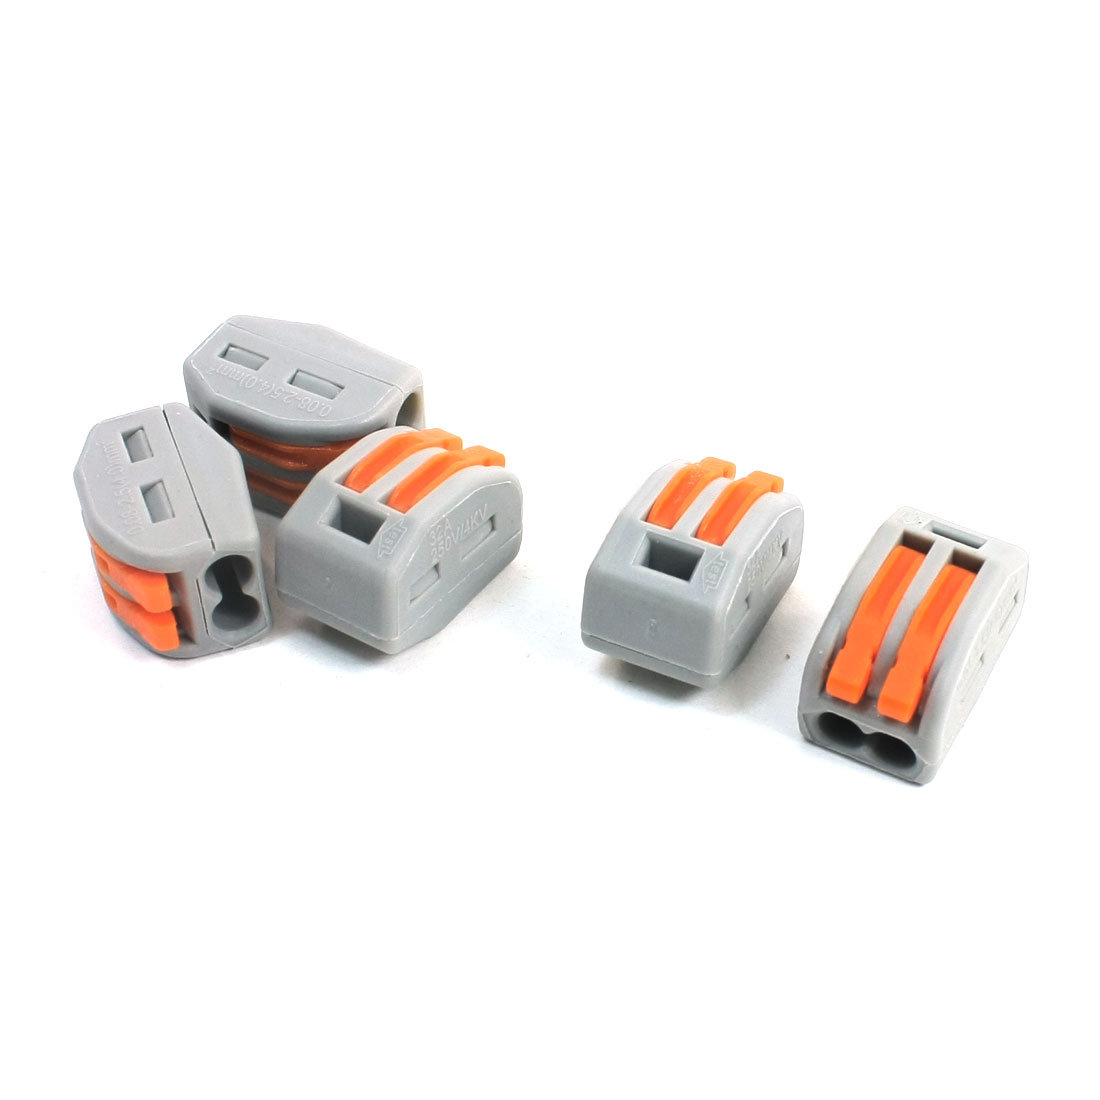 AC-250V-32A-2-Wire-0-08-2-5mm2-Lever-Lock-Clamp-Terminal-Block-5Pcs